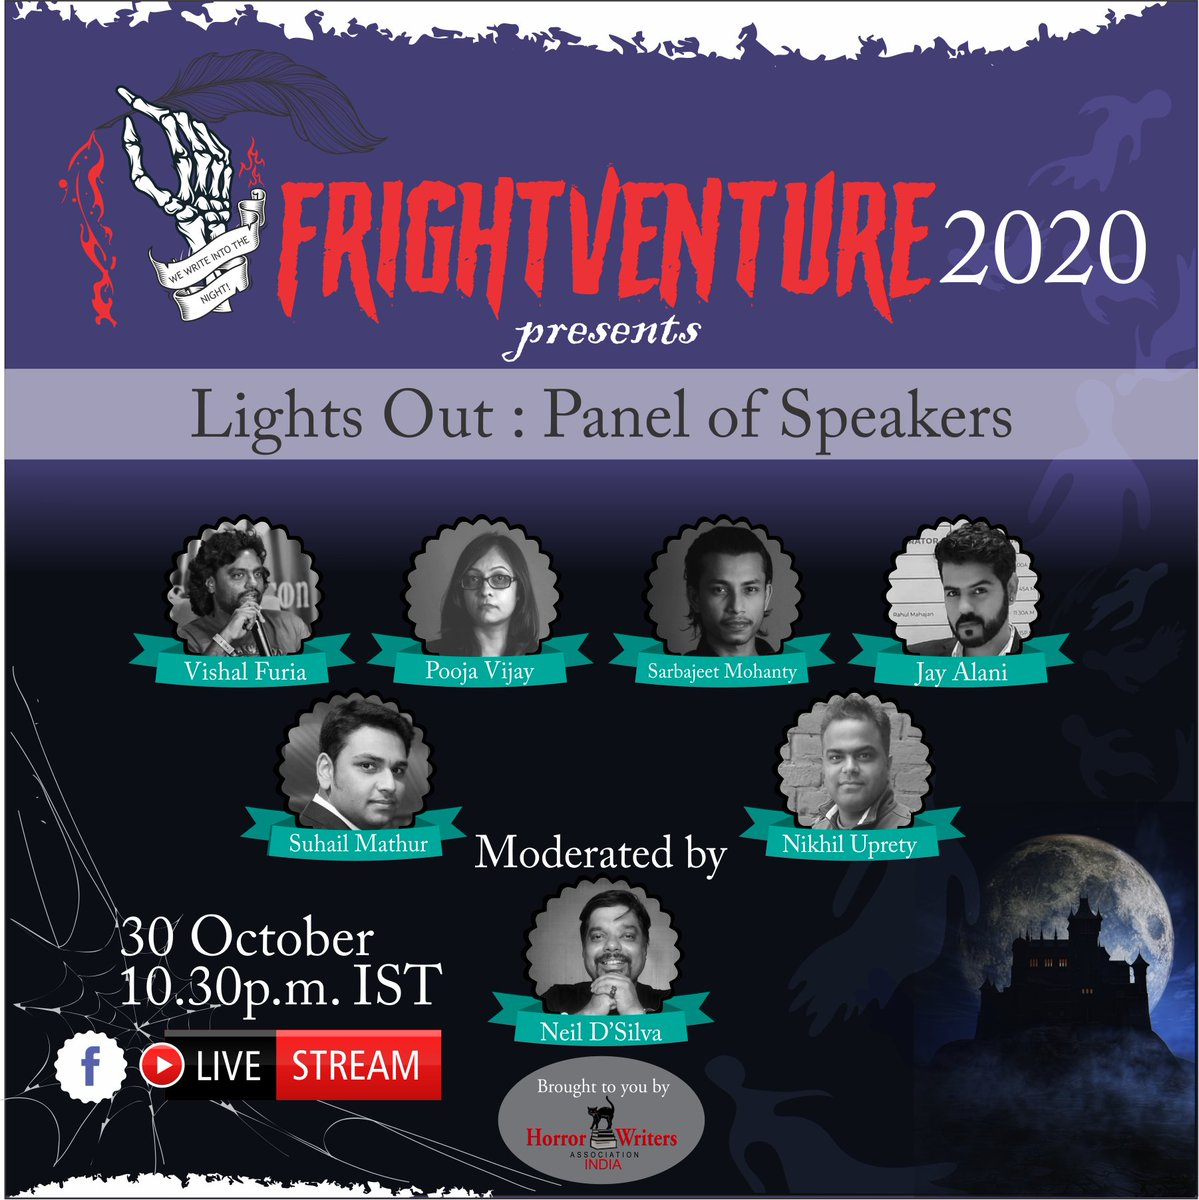 Presenting our third panel at FrightVenture 2020! LIGHTS OUT brings together @FuriaVishal @ijayalani @ghosthunterind @paranormalpooja Nikhil Uprety and Suhail Mathur. Moderated by me! This #HWAIndia event shall go live on  @HorrorWriters #WritingCommunity